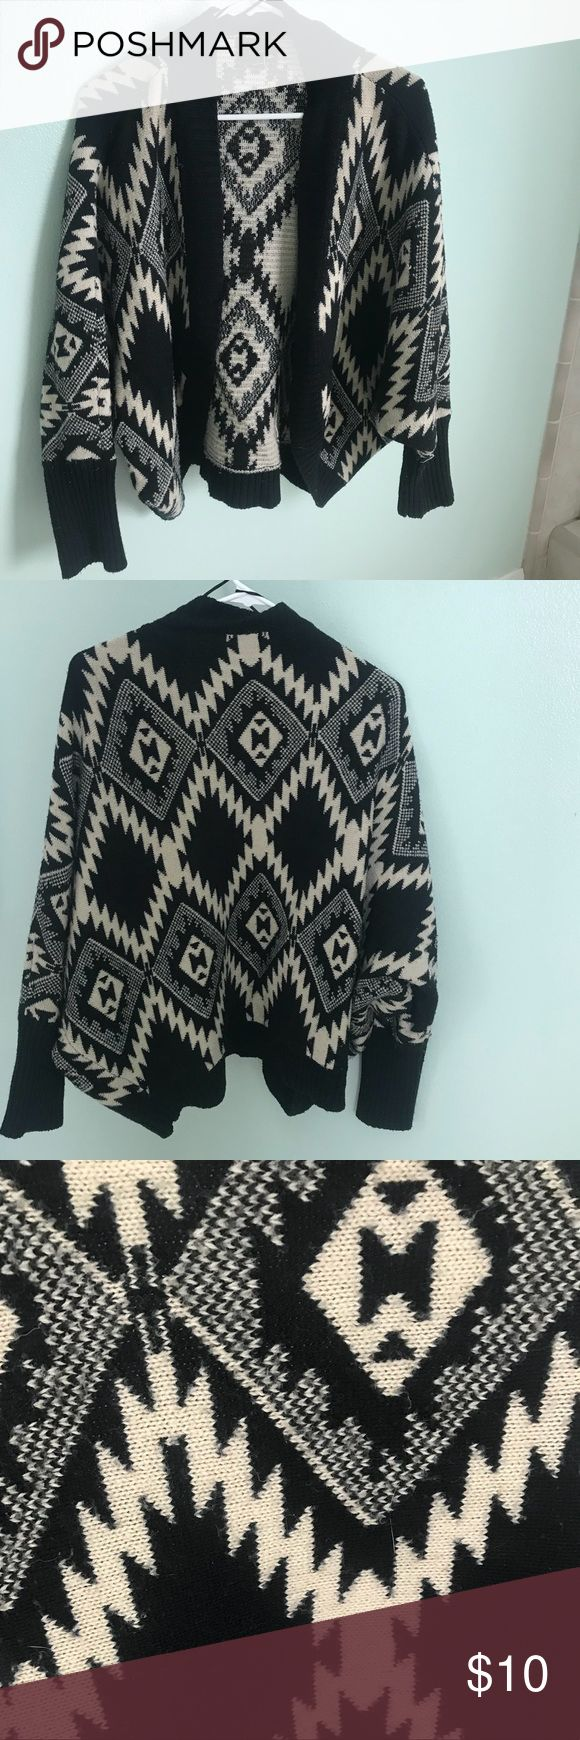 COMFY CARDIGAN Black and white tribal print cardigan. Gently worn and no repairs/damages. Sweaters Cardigans